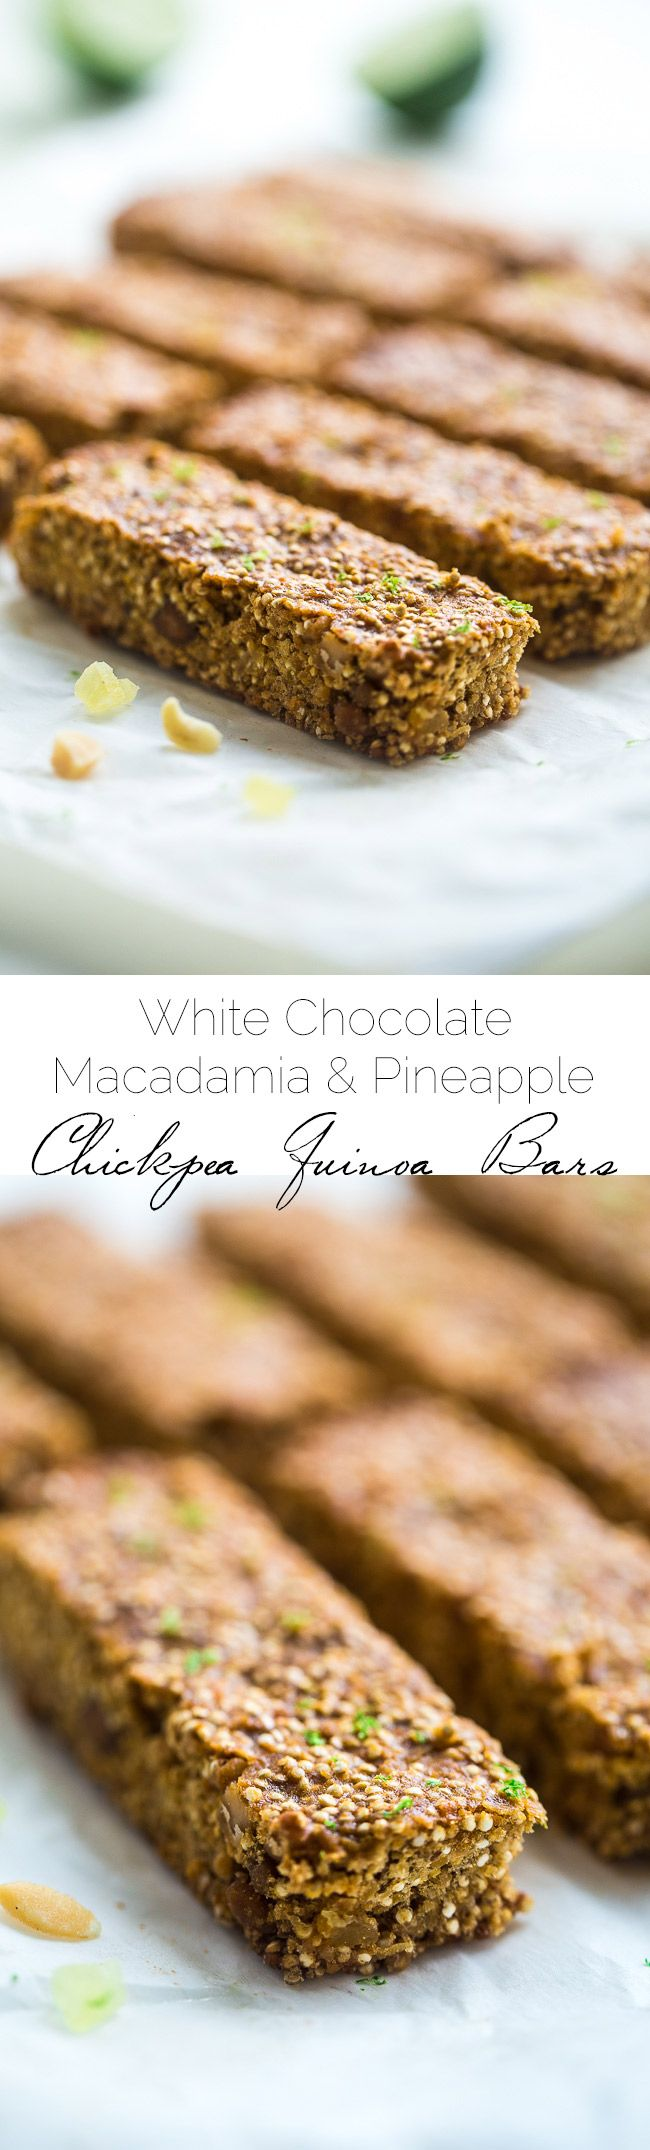 Tropical Chickpea & Quinoa Homemade Protein Bars - Quinoa, chickpeas, white chocolate, macadamia nuts, pineapple and fresh lime come together in these easy, gluten free and healthy snack bars that taste like summer! | Foodfaithfitness.com | @FoodFaithFit